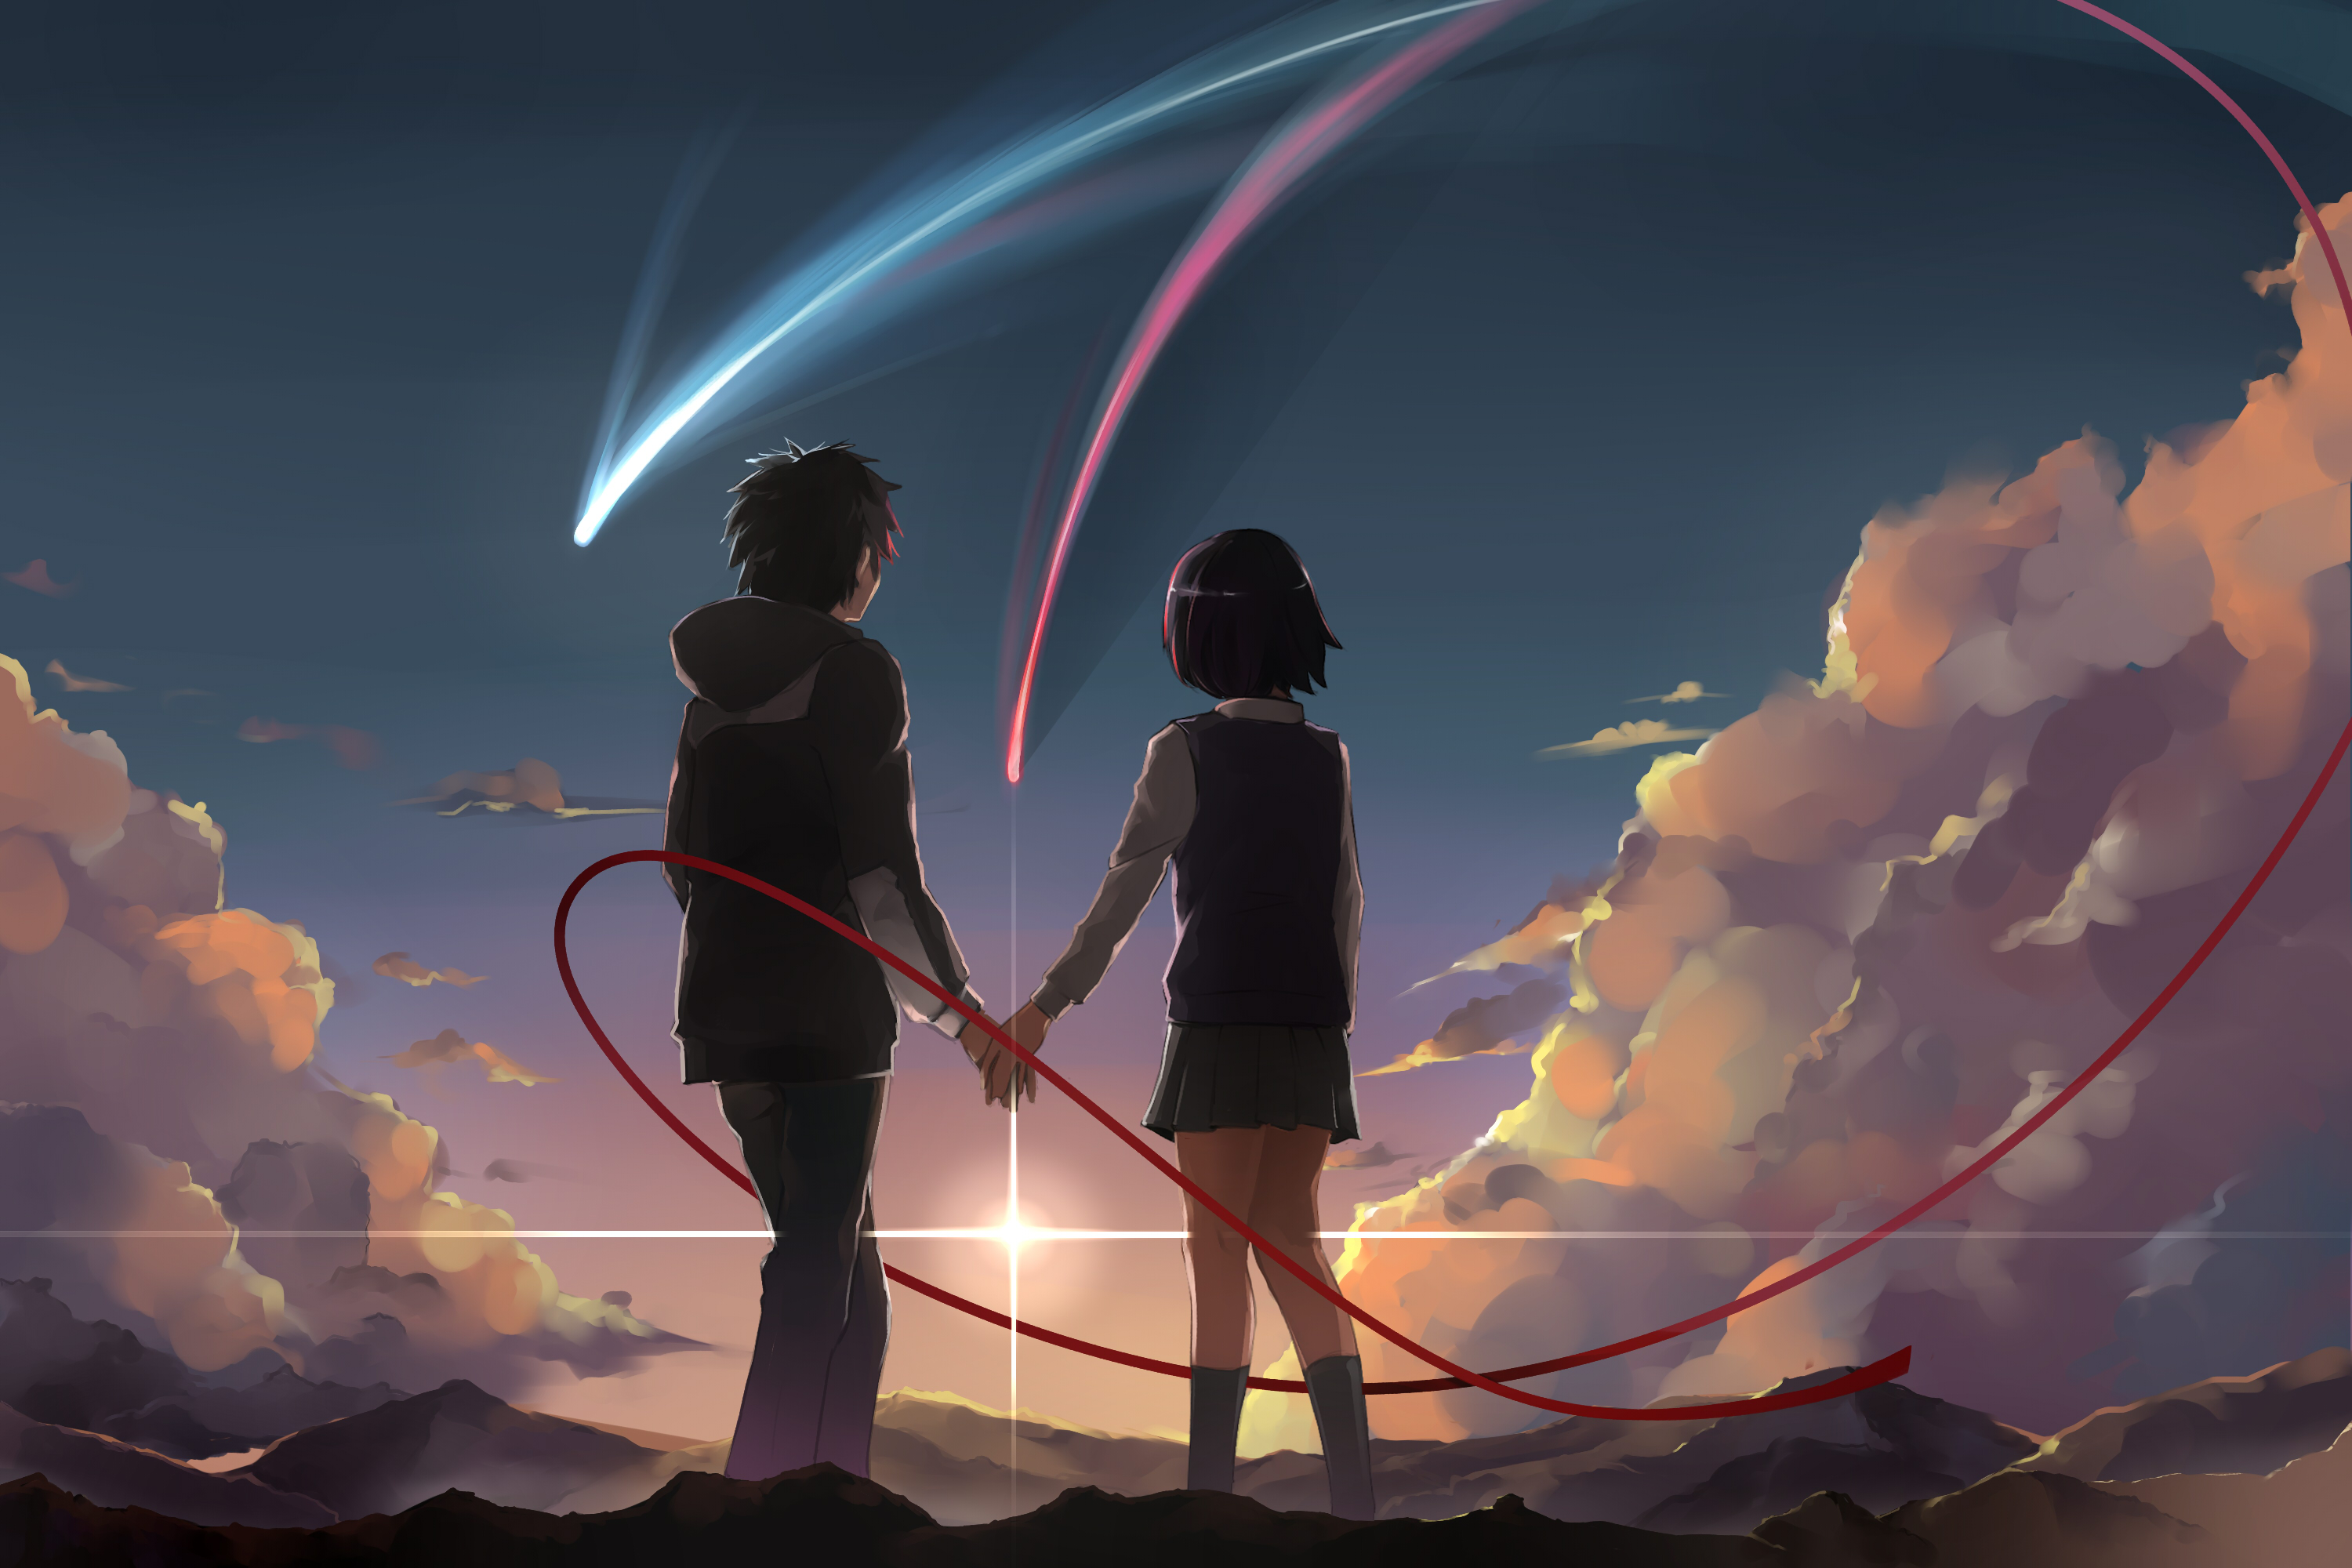 Your name hd wallpaper background image 3000x2000 - M416 wallpaper ...